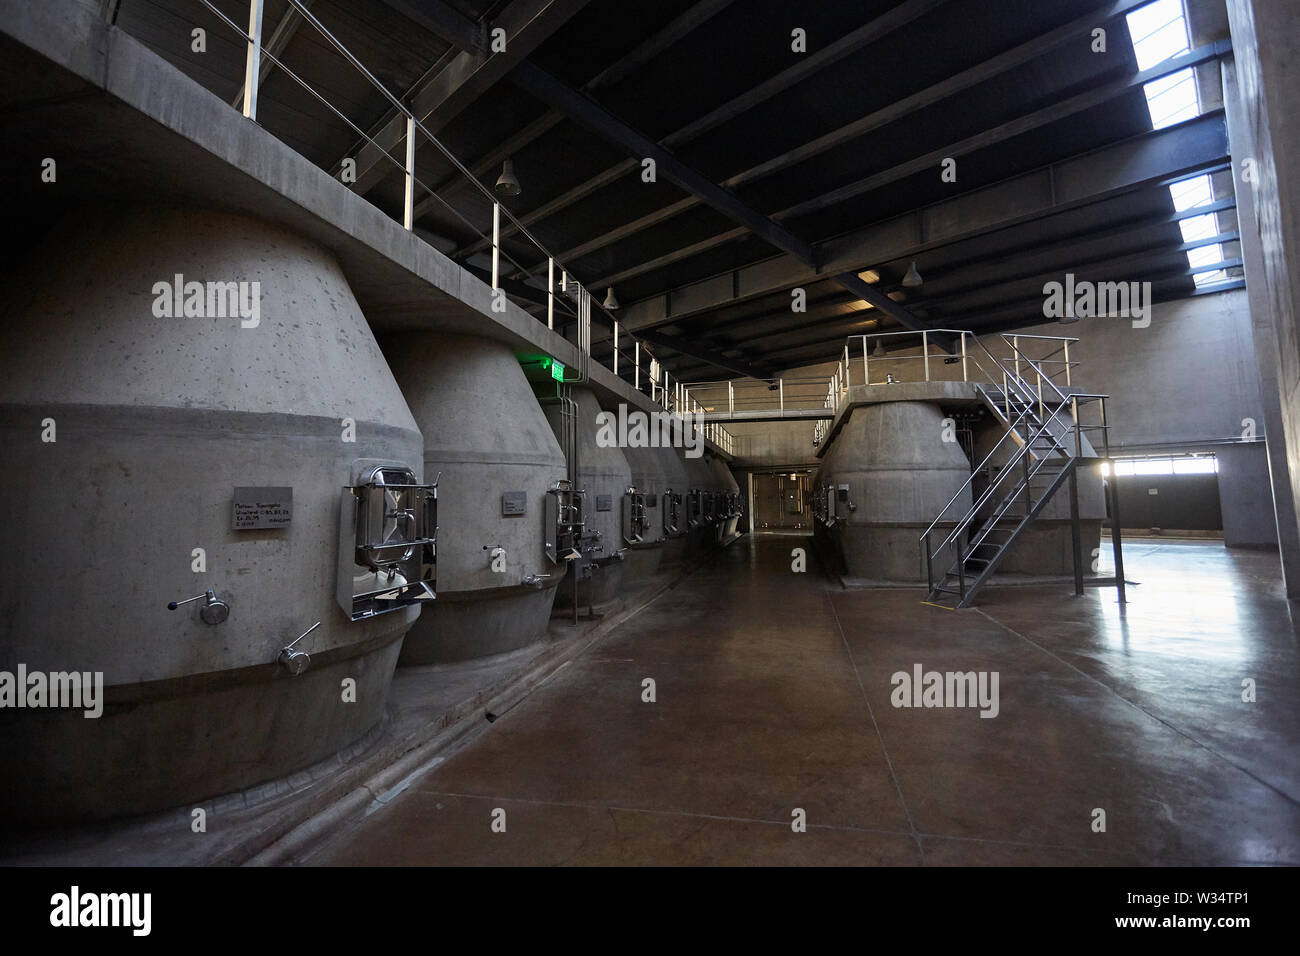 11 July 2019, Argentina, San Carlos: View of the wine cellar of Piedra Infinita. The Argentinian winery Piedra Infinita of the brand Zuccardi, was awarded by the World's Best Vineyards Academy as the best winery and winery in the world. This award recognizes the best 50 wineries in the world, based on the experience offered to the visitor. Photo: Marcelo Aguilar/dpa - Stock Image